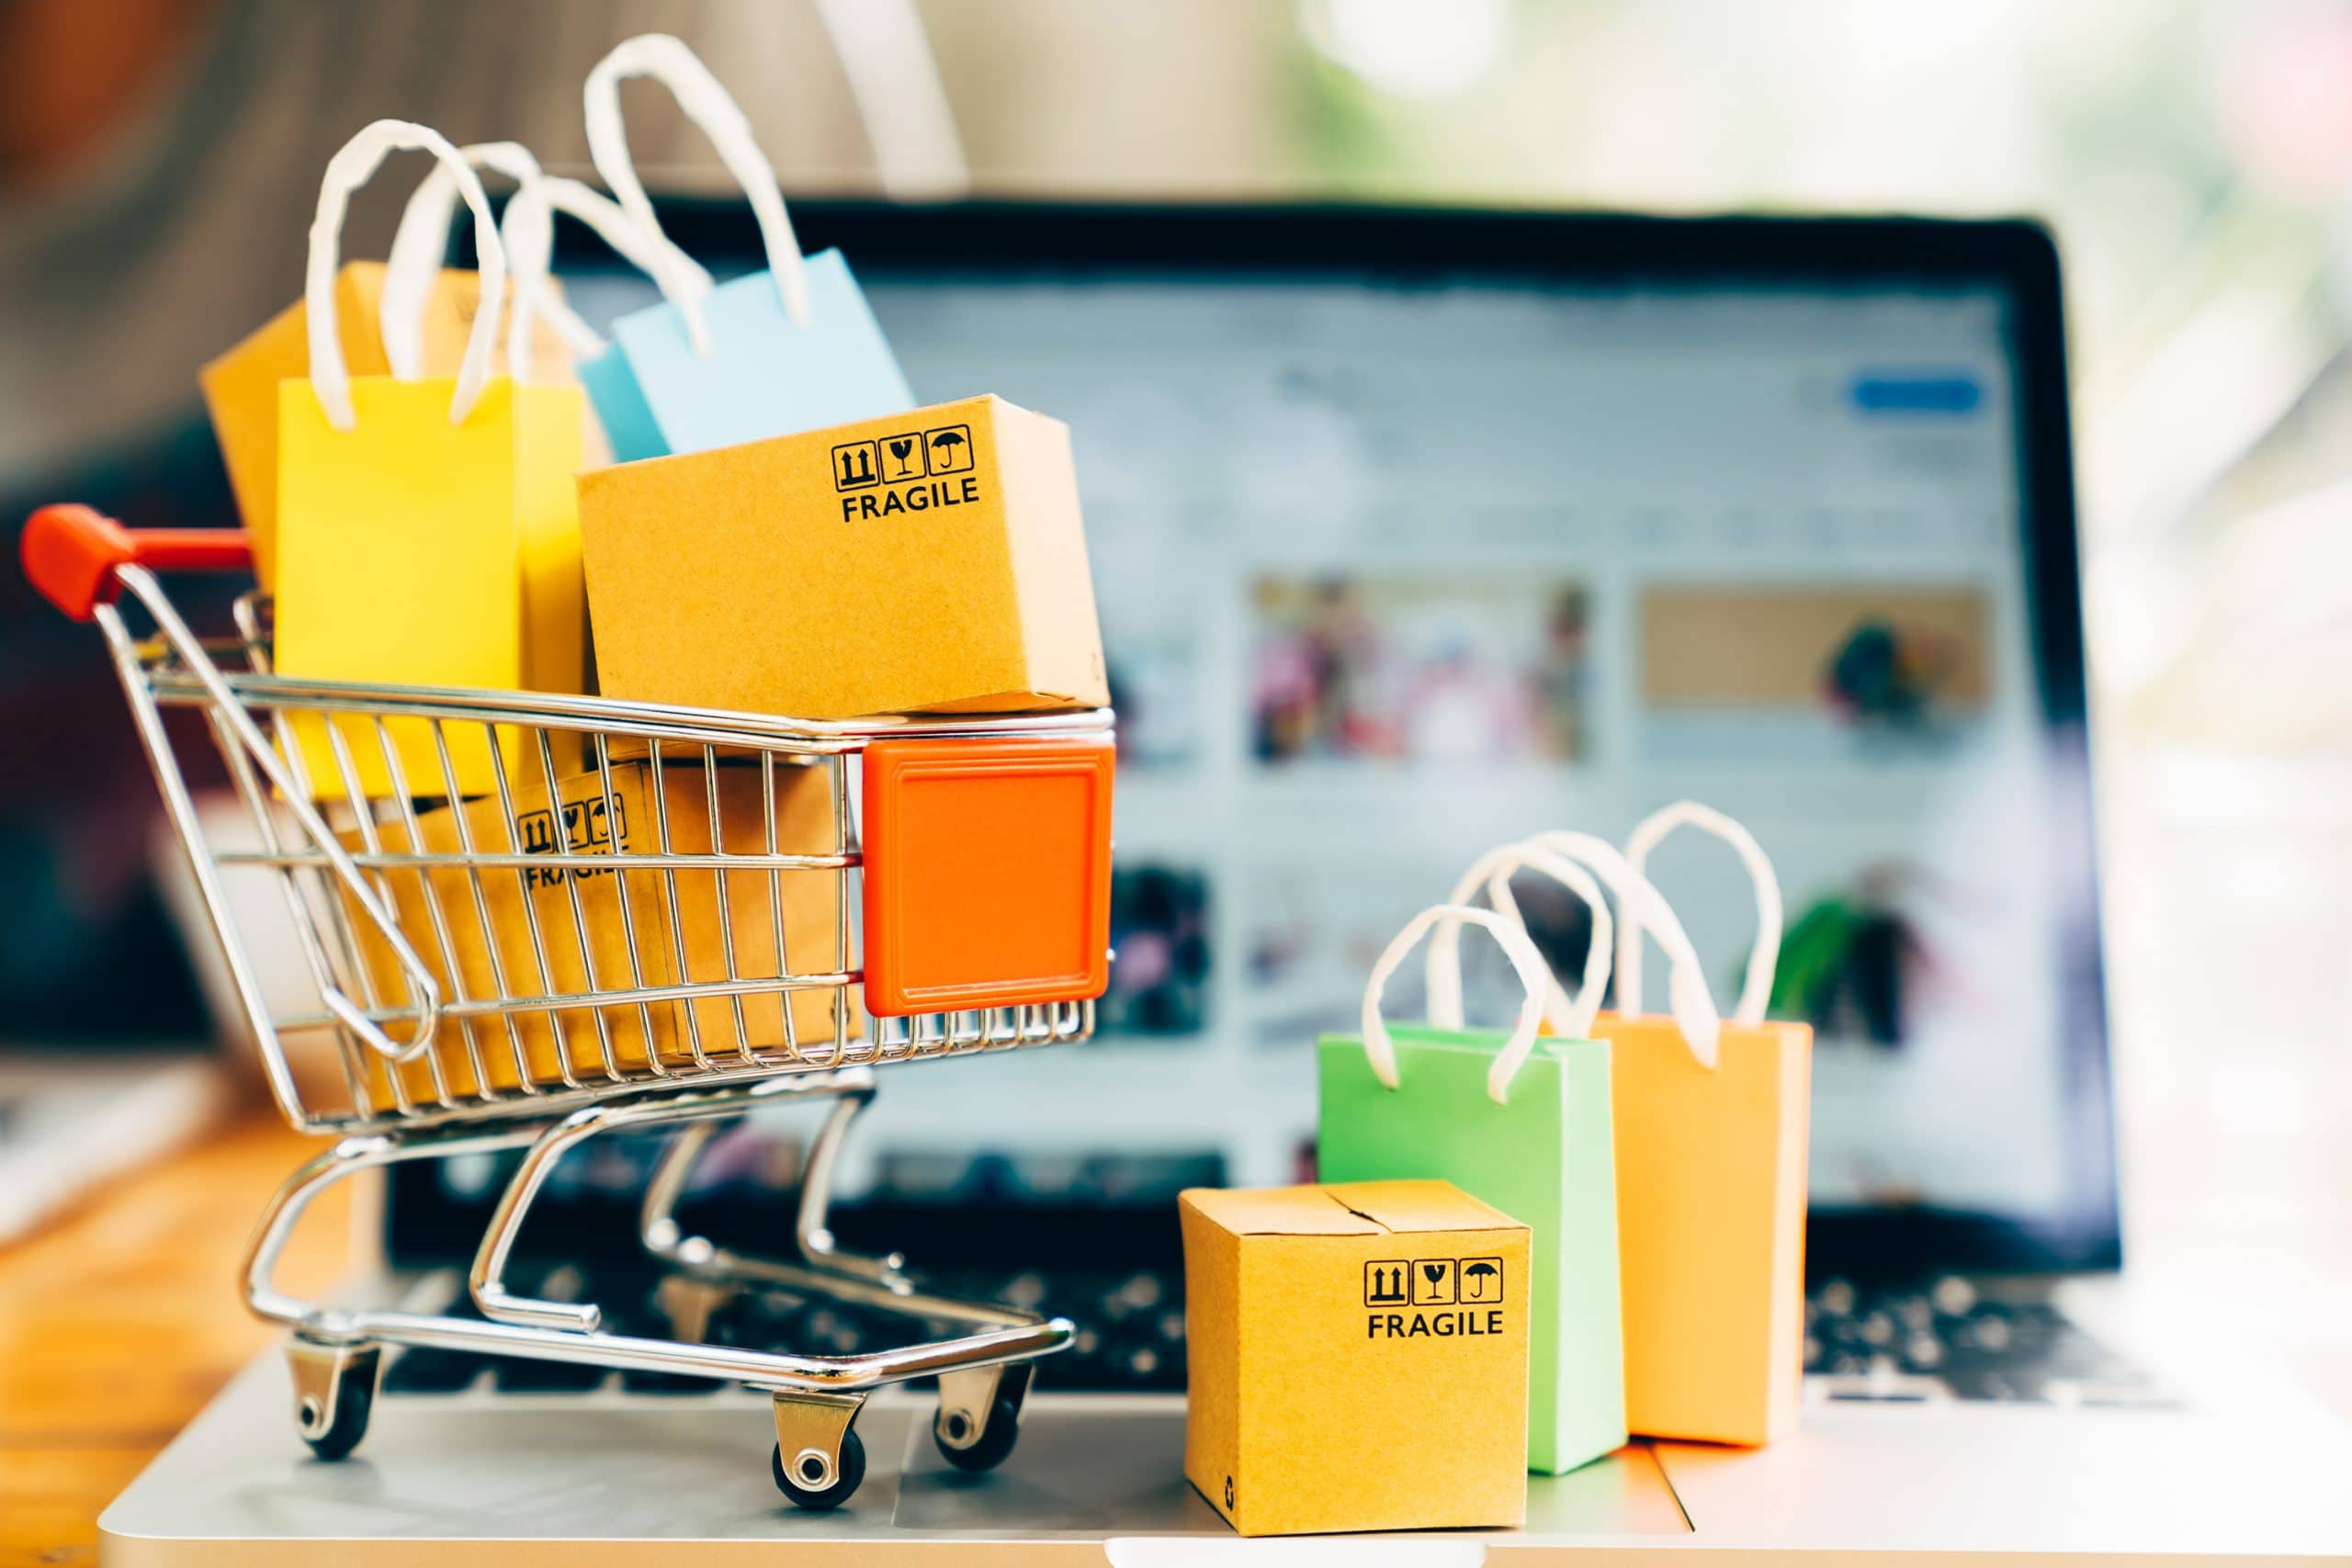 Shopping Addiction Fueled By Online Shopping - Addiction Center